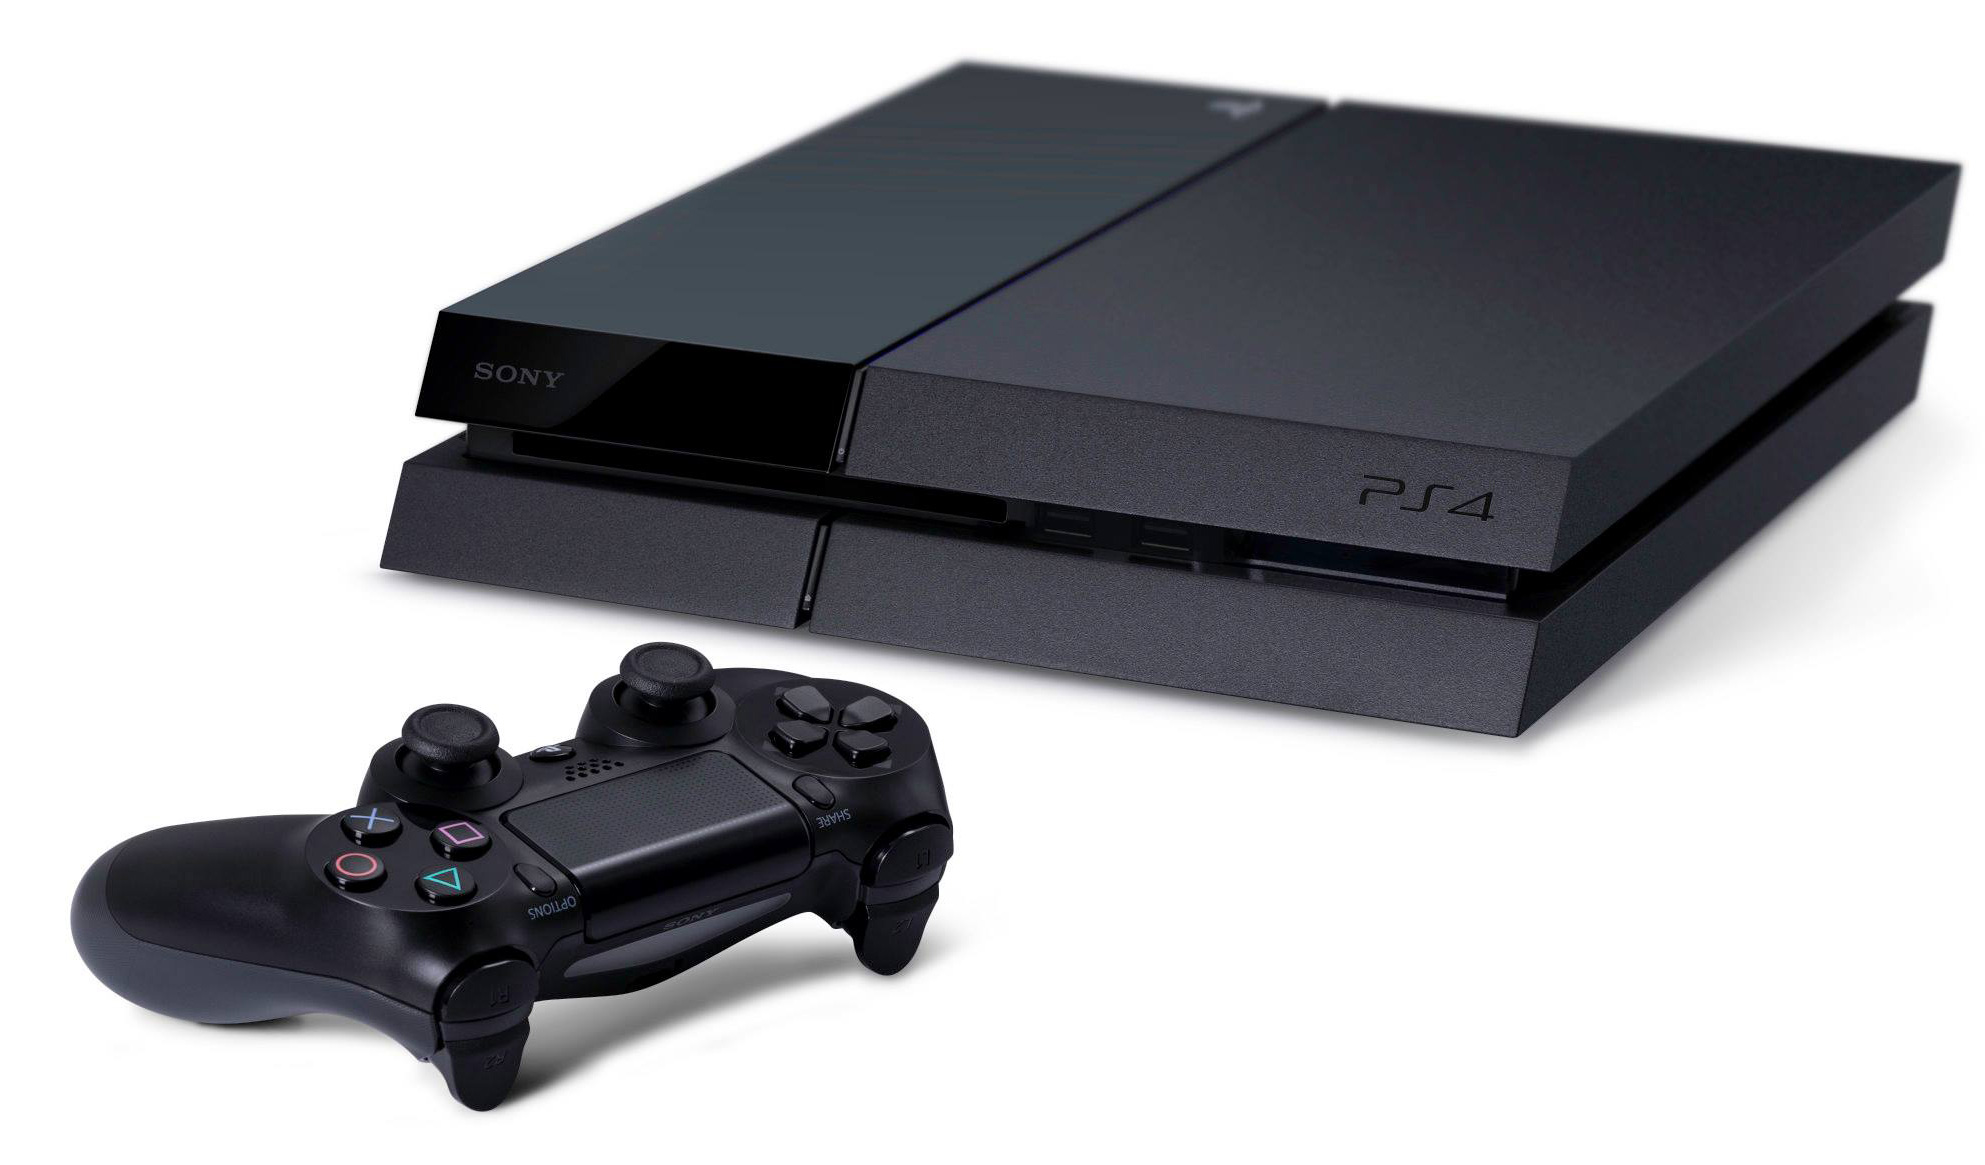 PS4 Heat Issues? Not Likely - PS4 Approved for FCC Registration